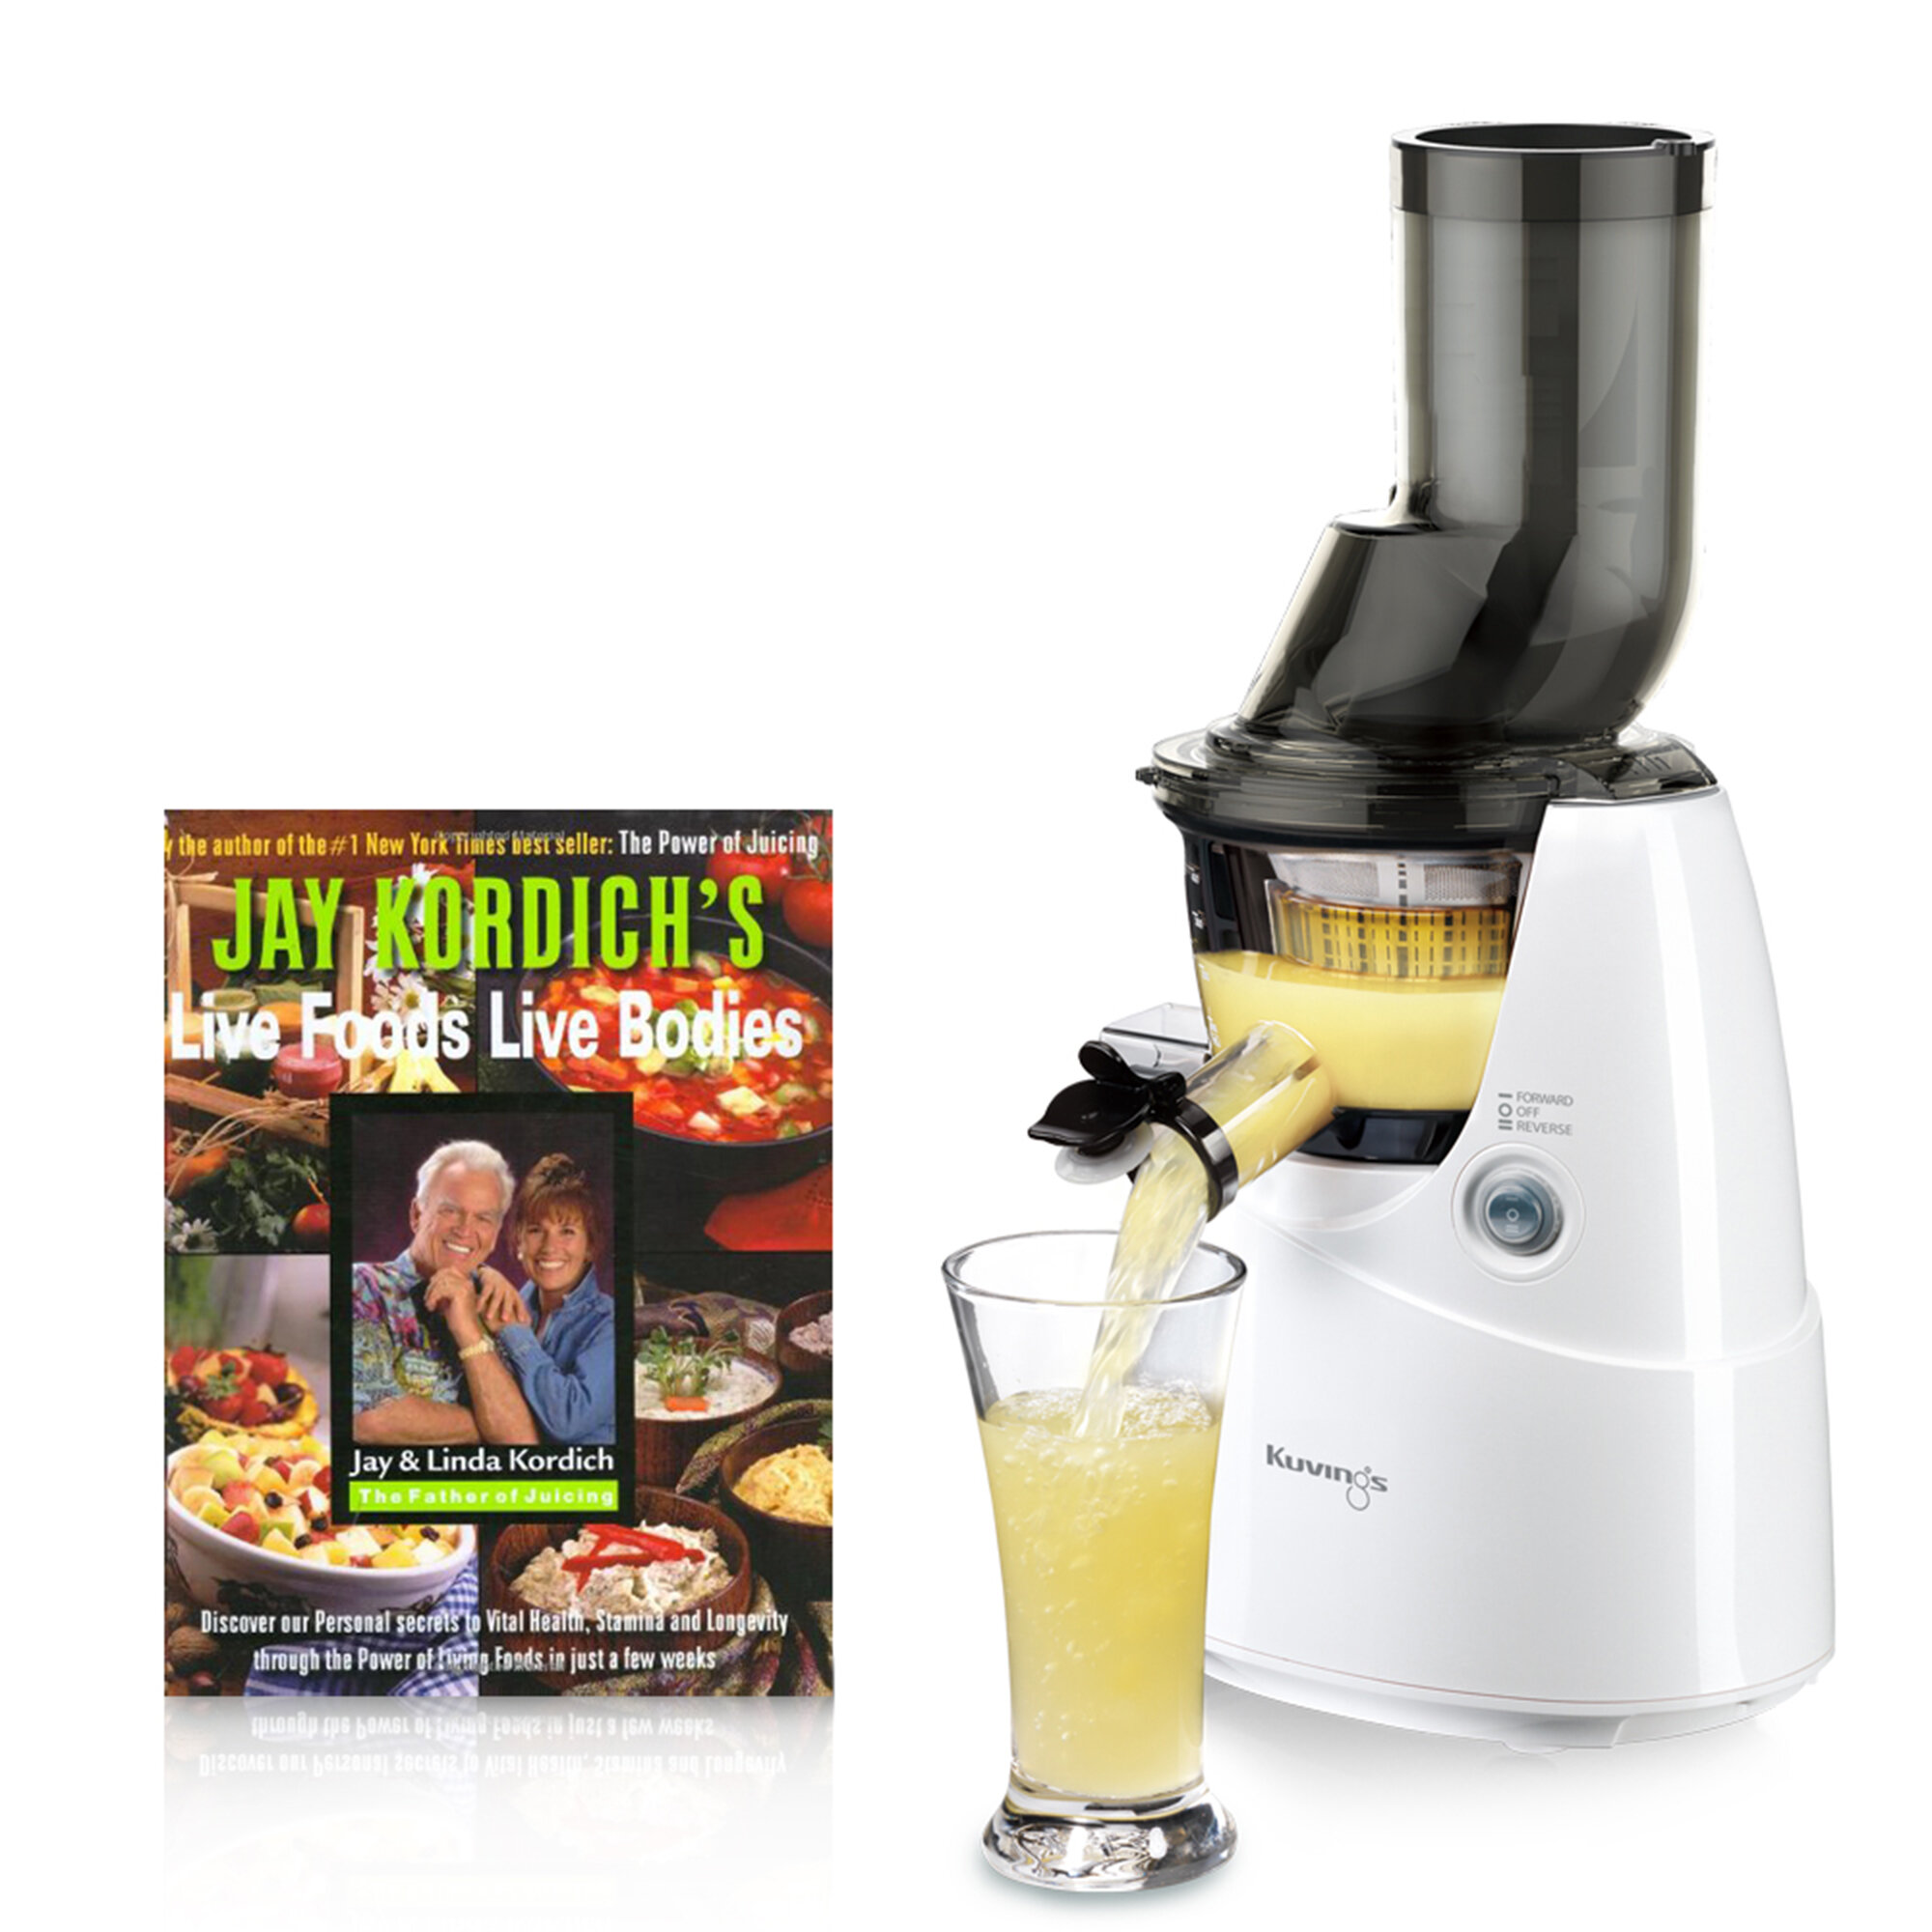 KUvINGS Whole Slow Juicer eBay